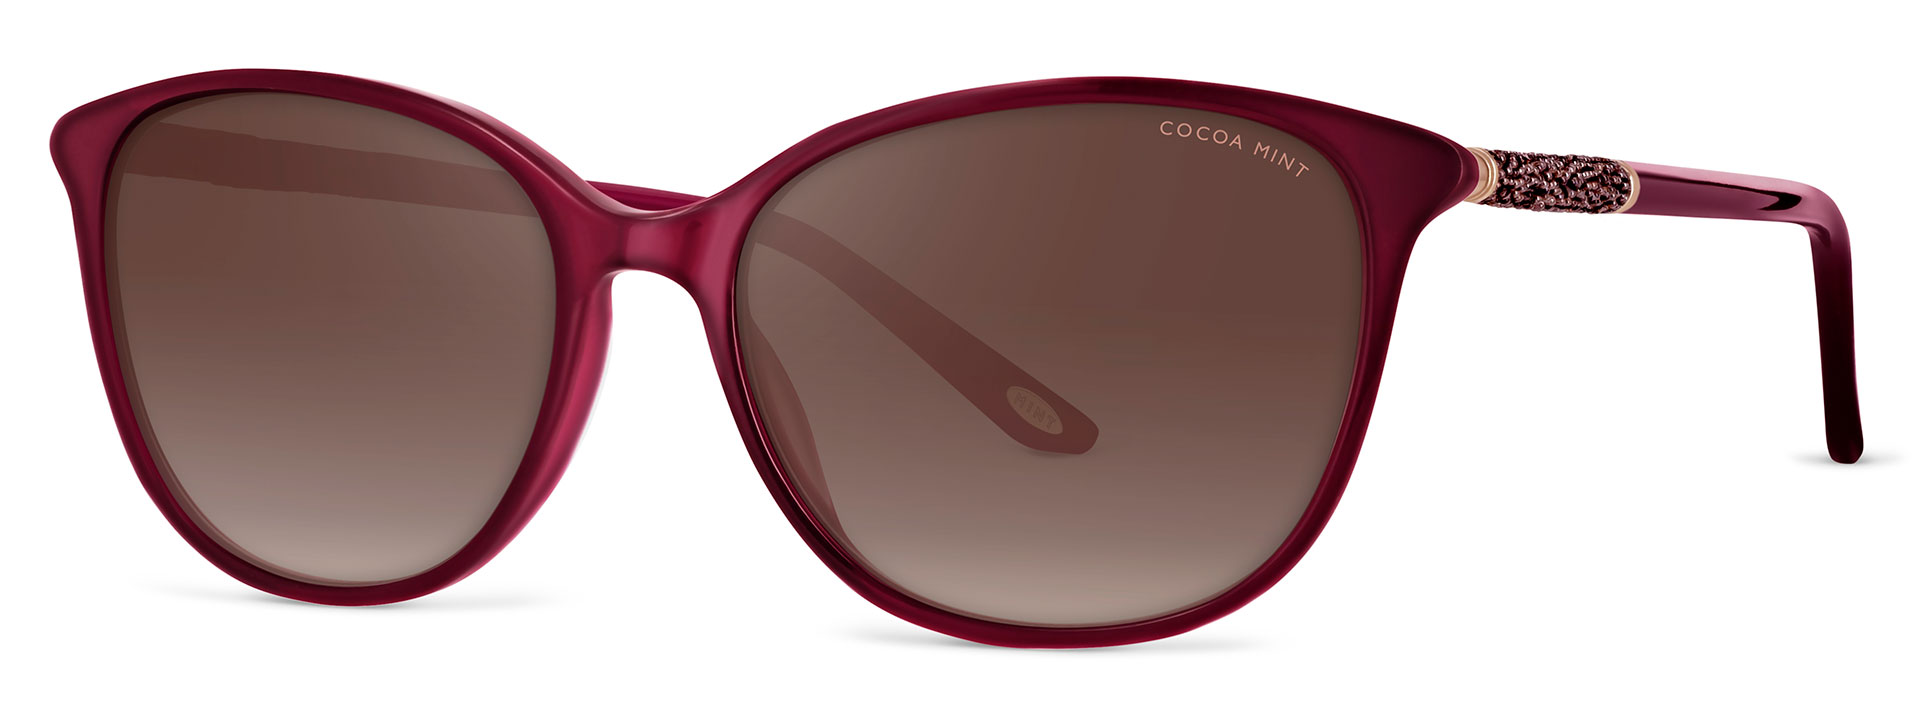 Cocoa Mint Sun Glasses - Burgundy - CMS2067-C2